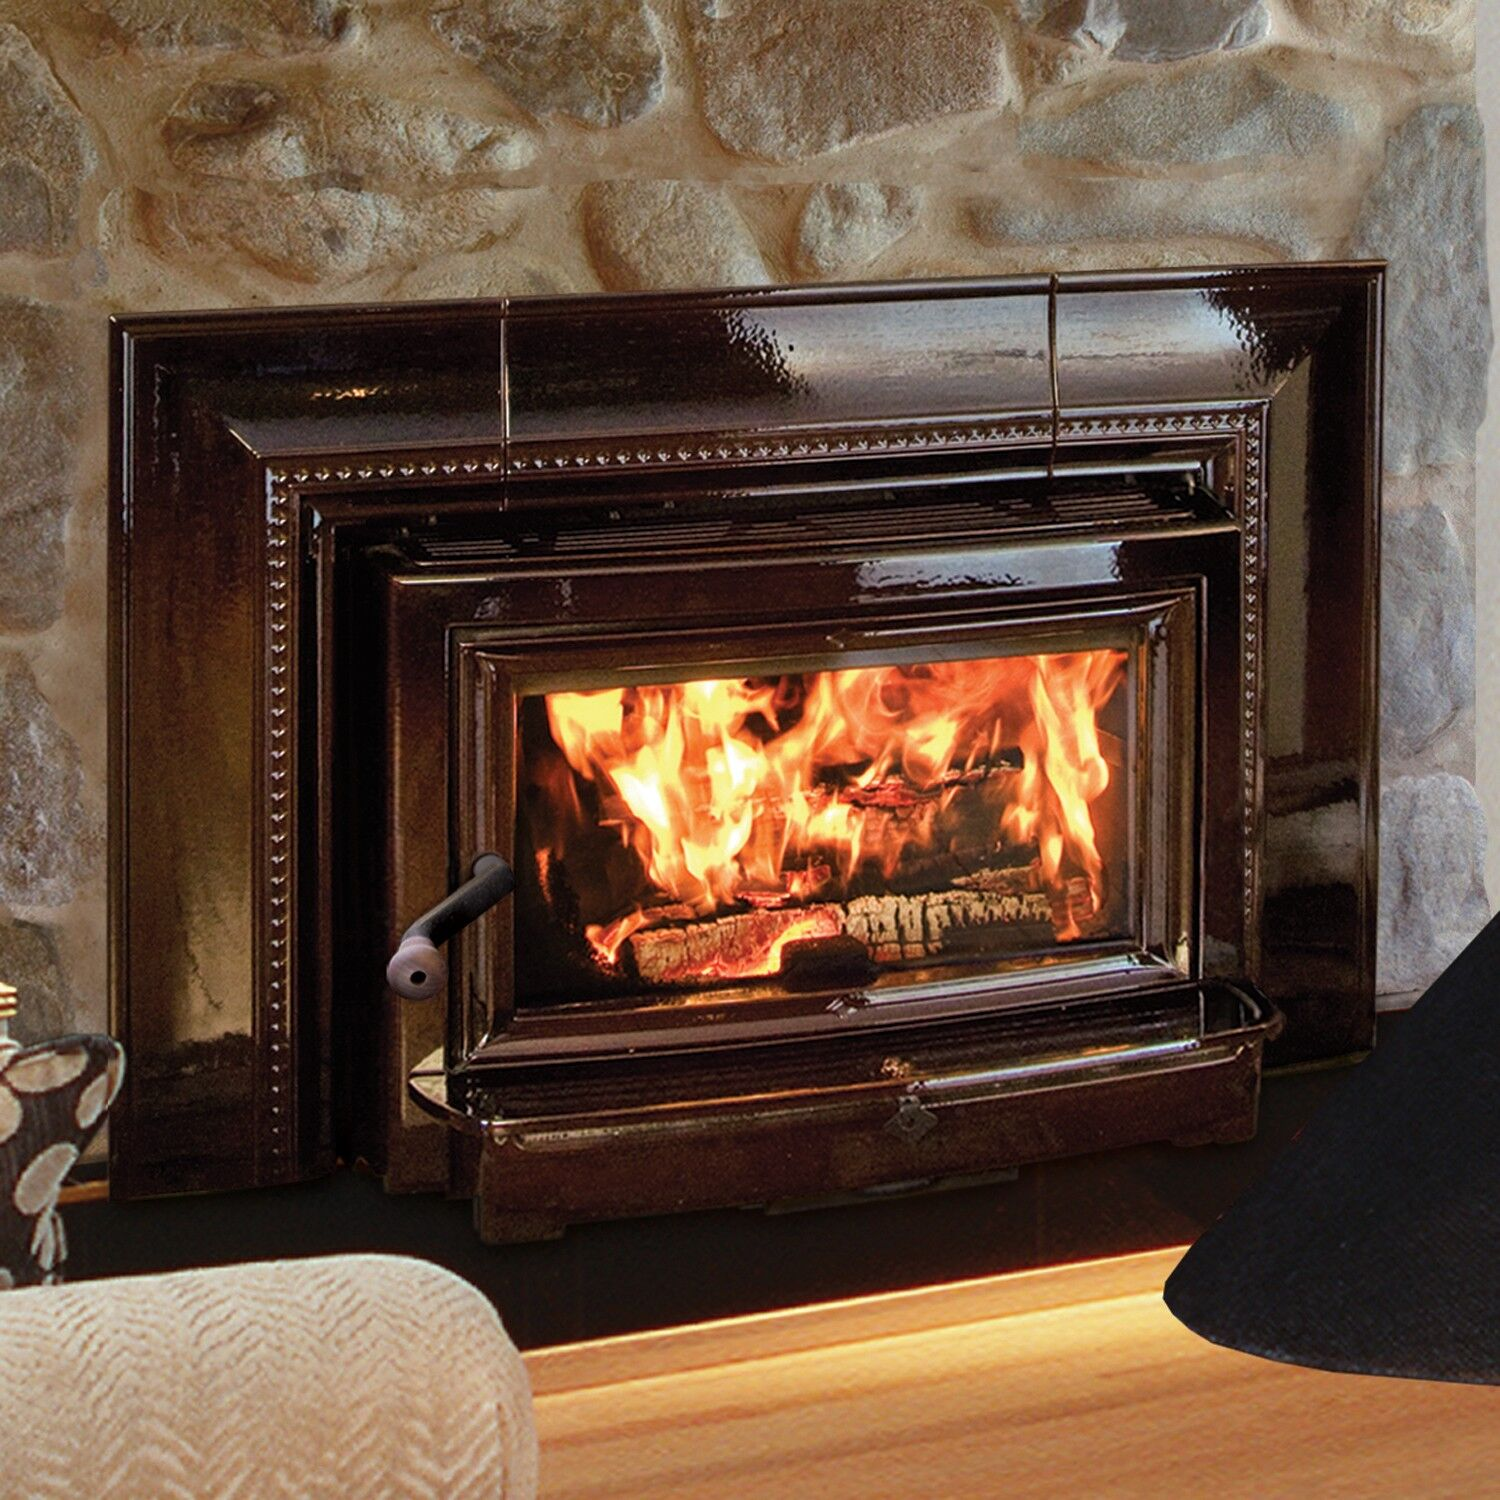 Propane Fireplace Repair Near Me Virginia S Hearth And Fireplace Specialists Wood Or Gas Built